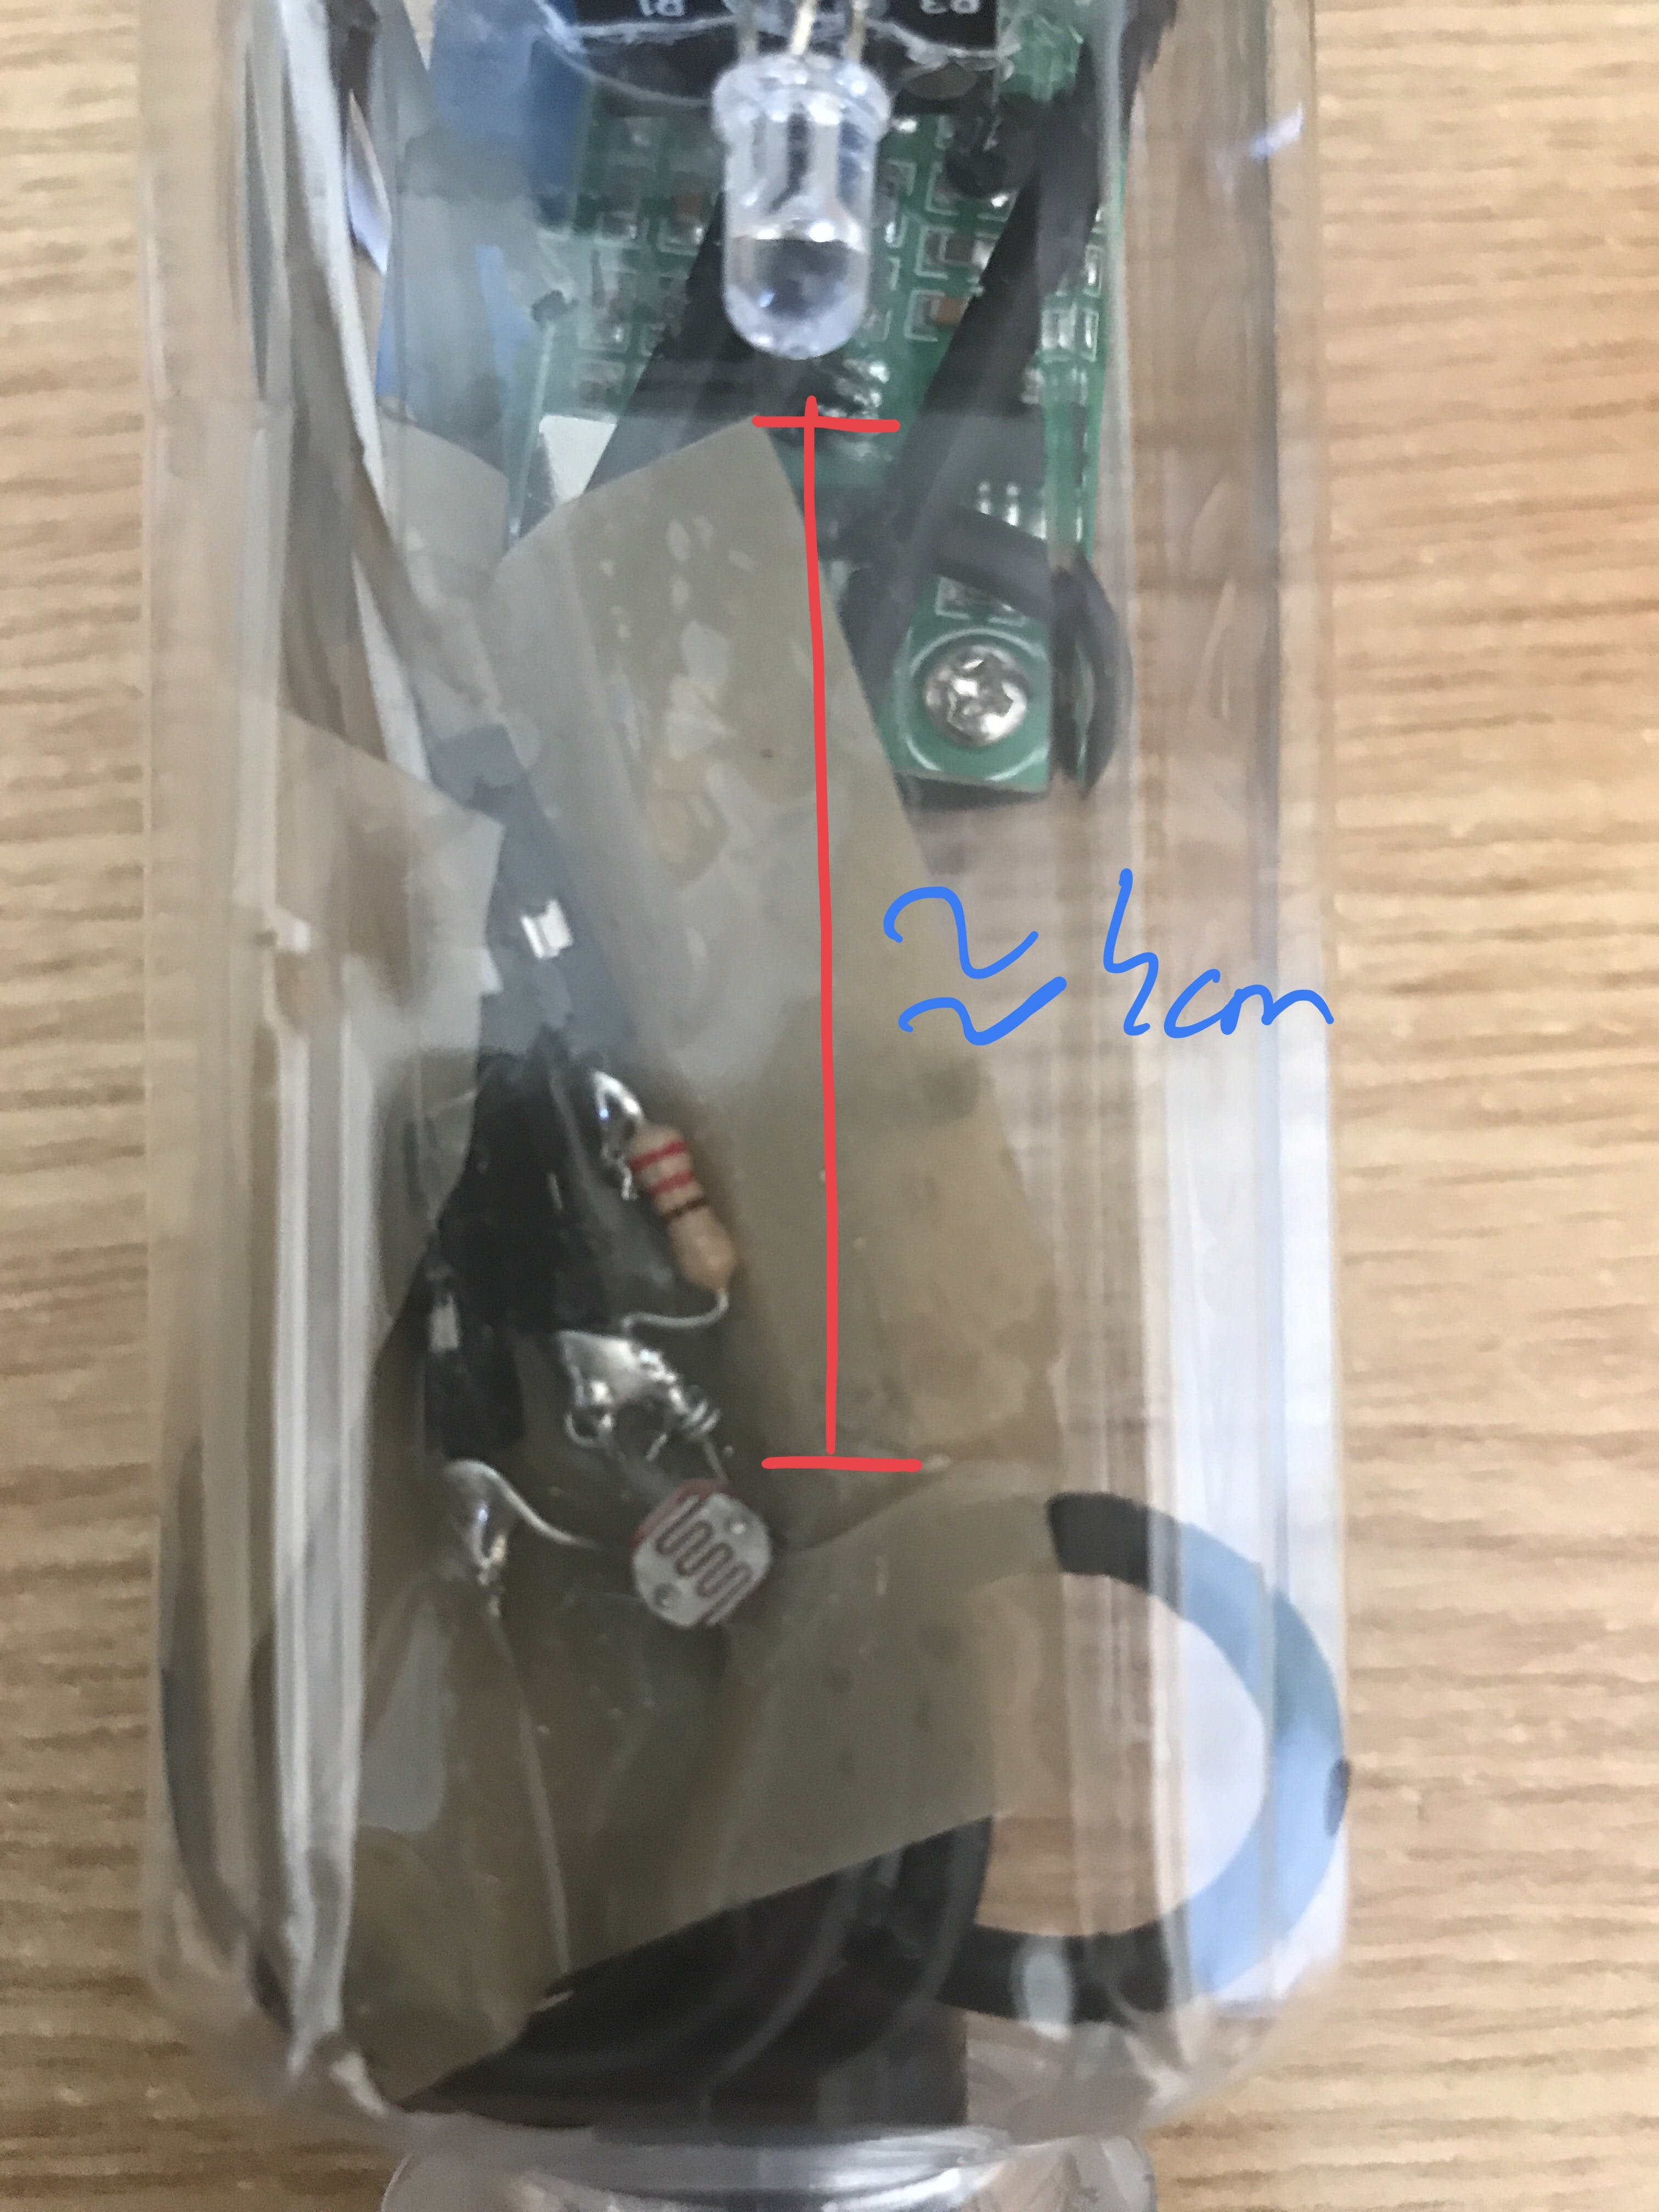 Tape the LED around 4cm above the photoresistor on the outside of the bottle, ensure that it is just above the water level sensor